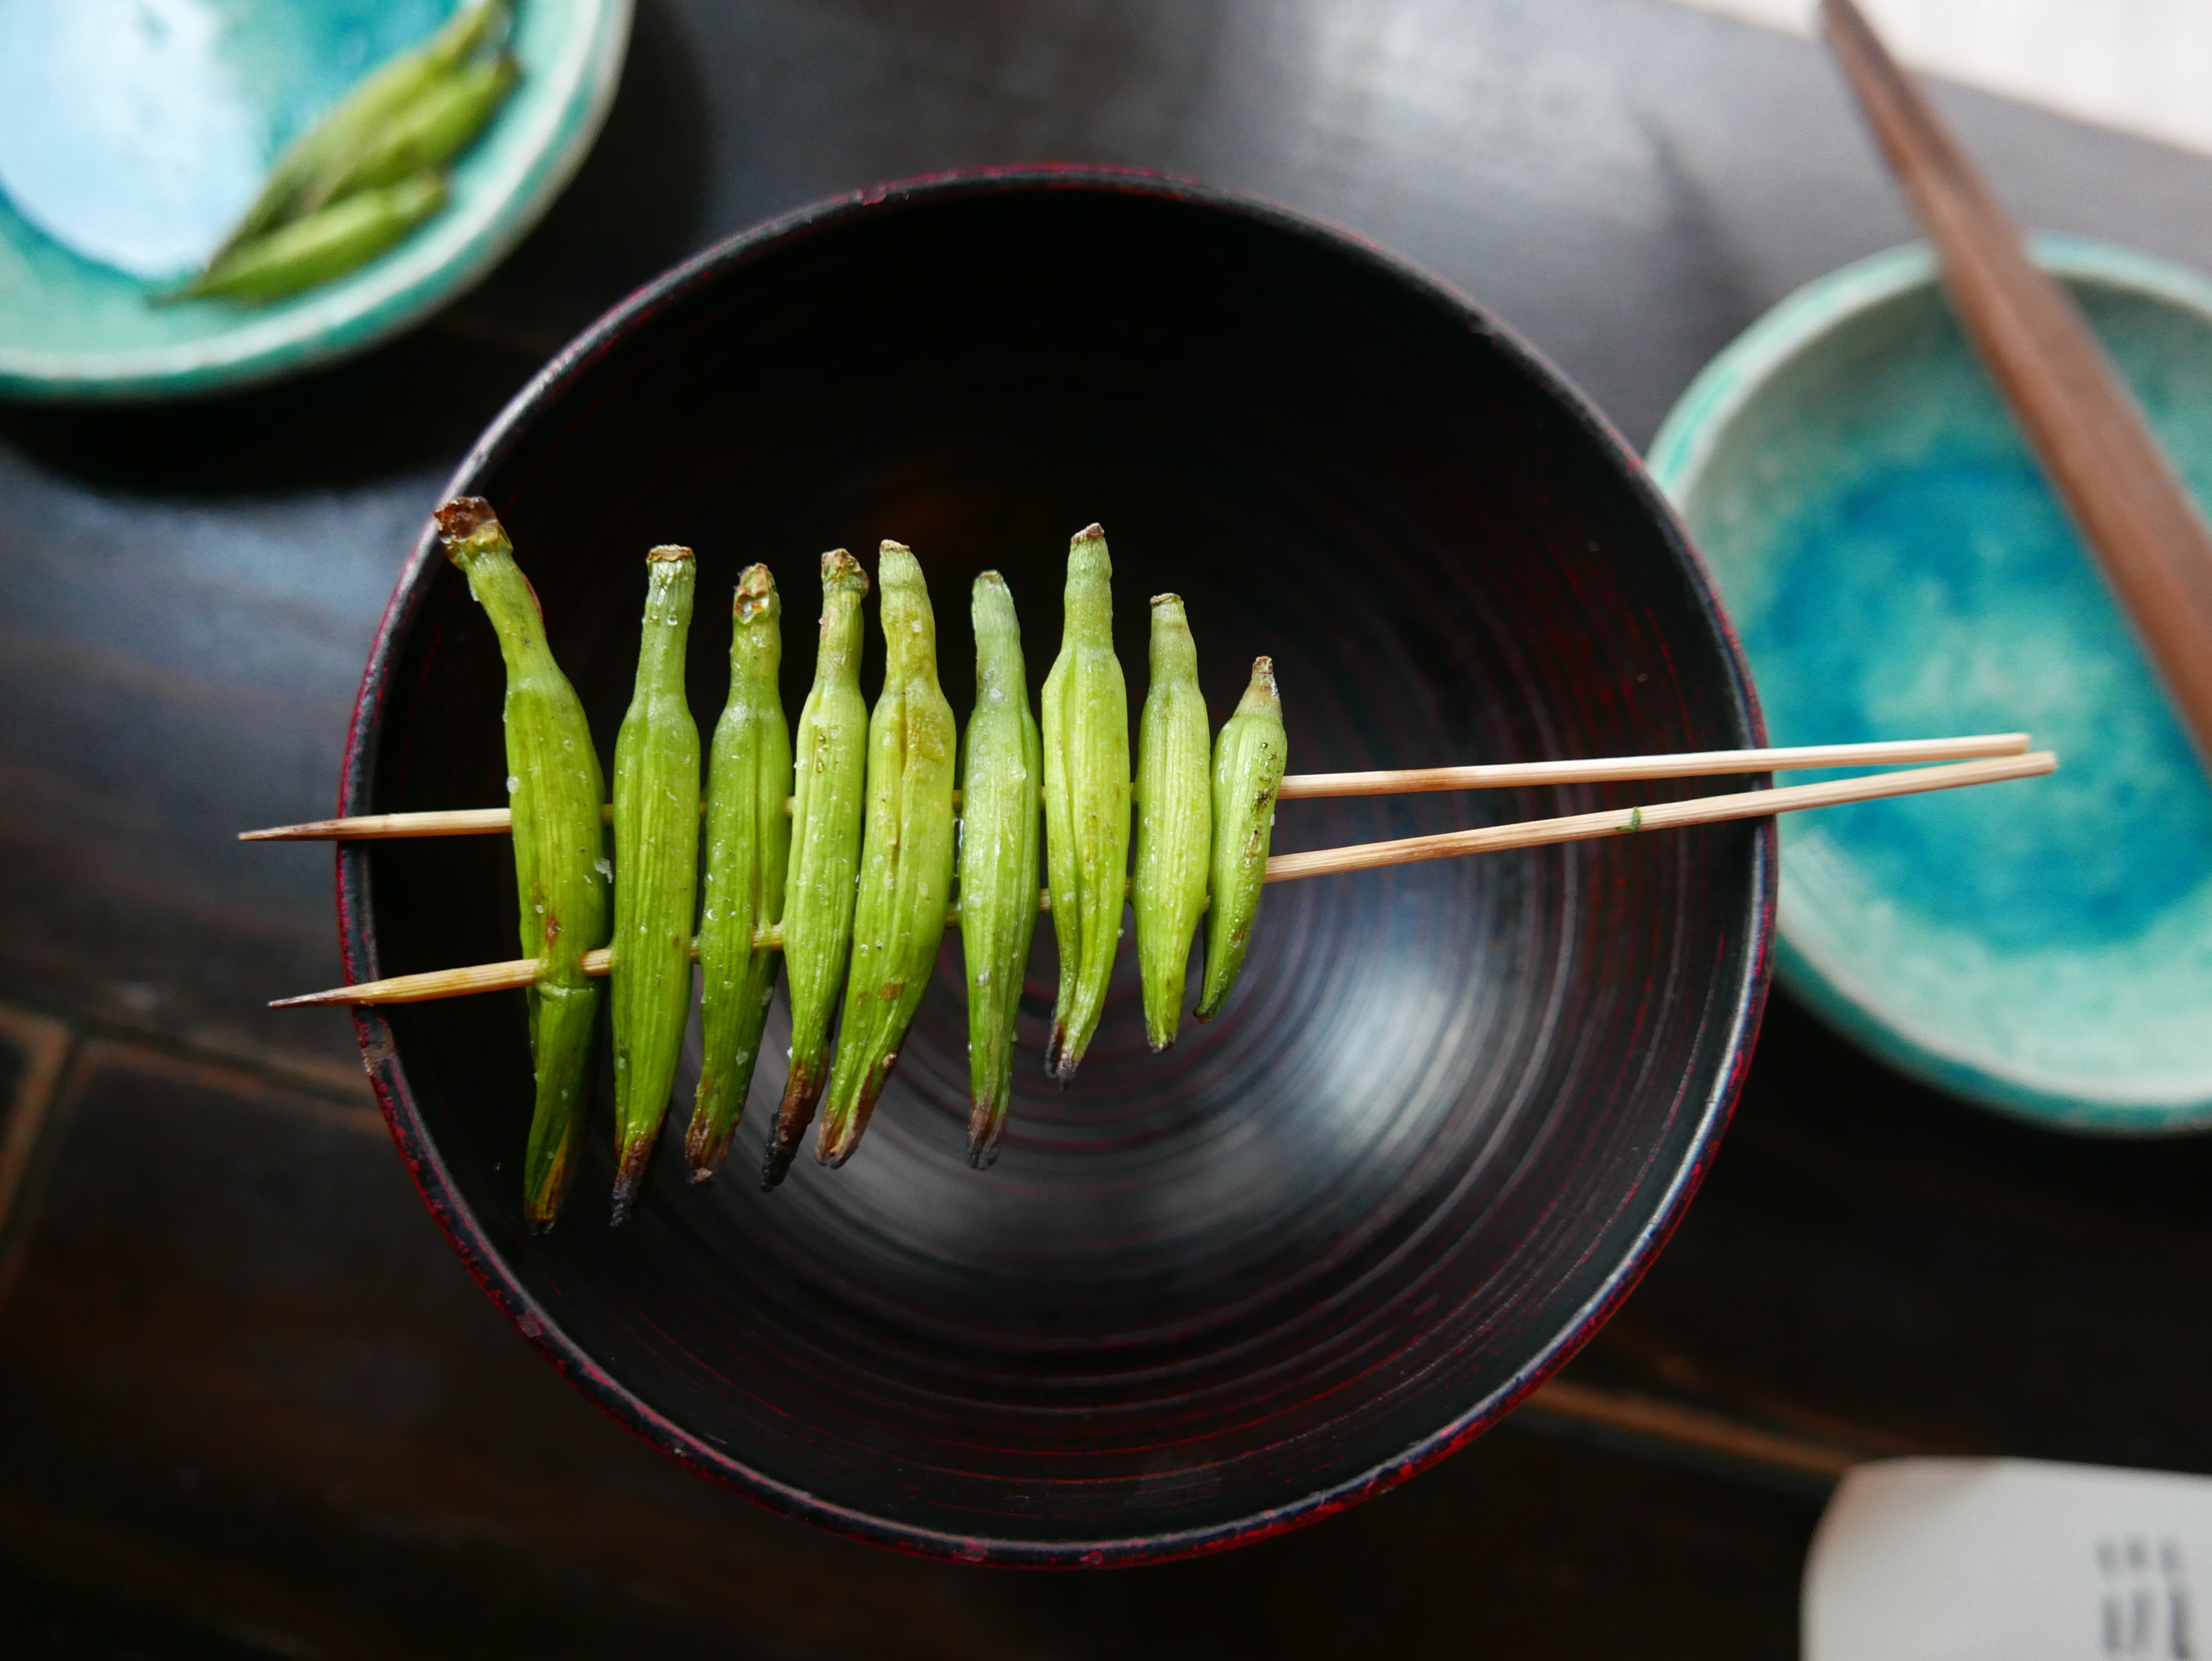 green ladyfingers skewer in wooden sticks